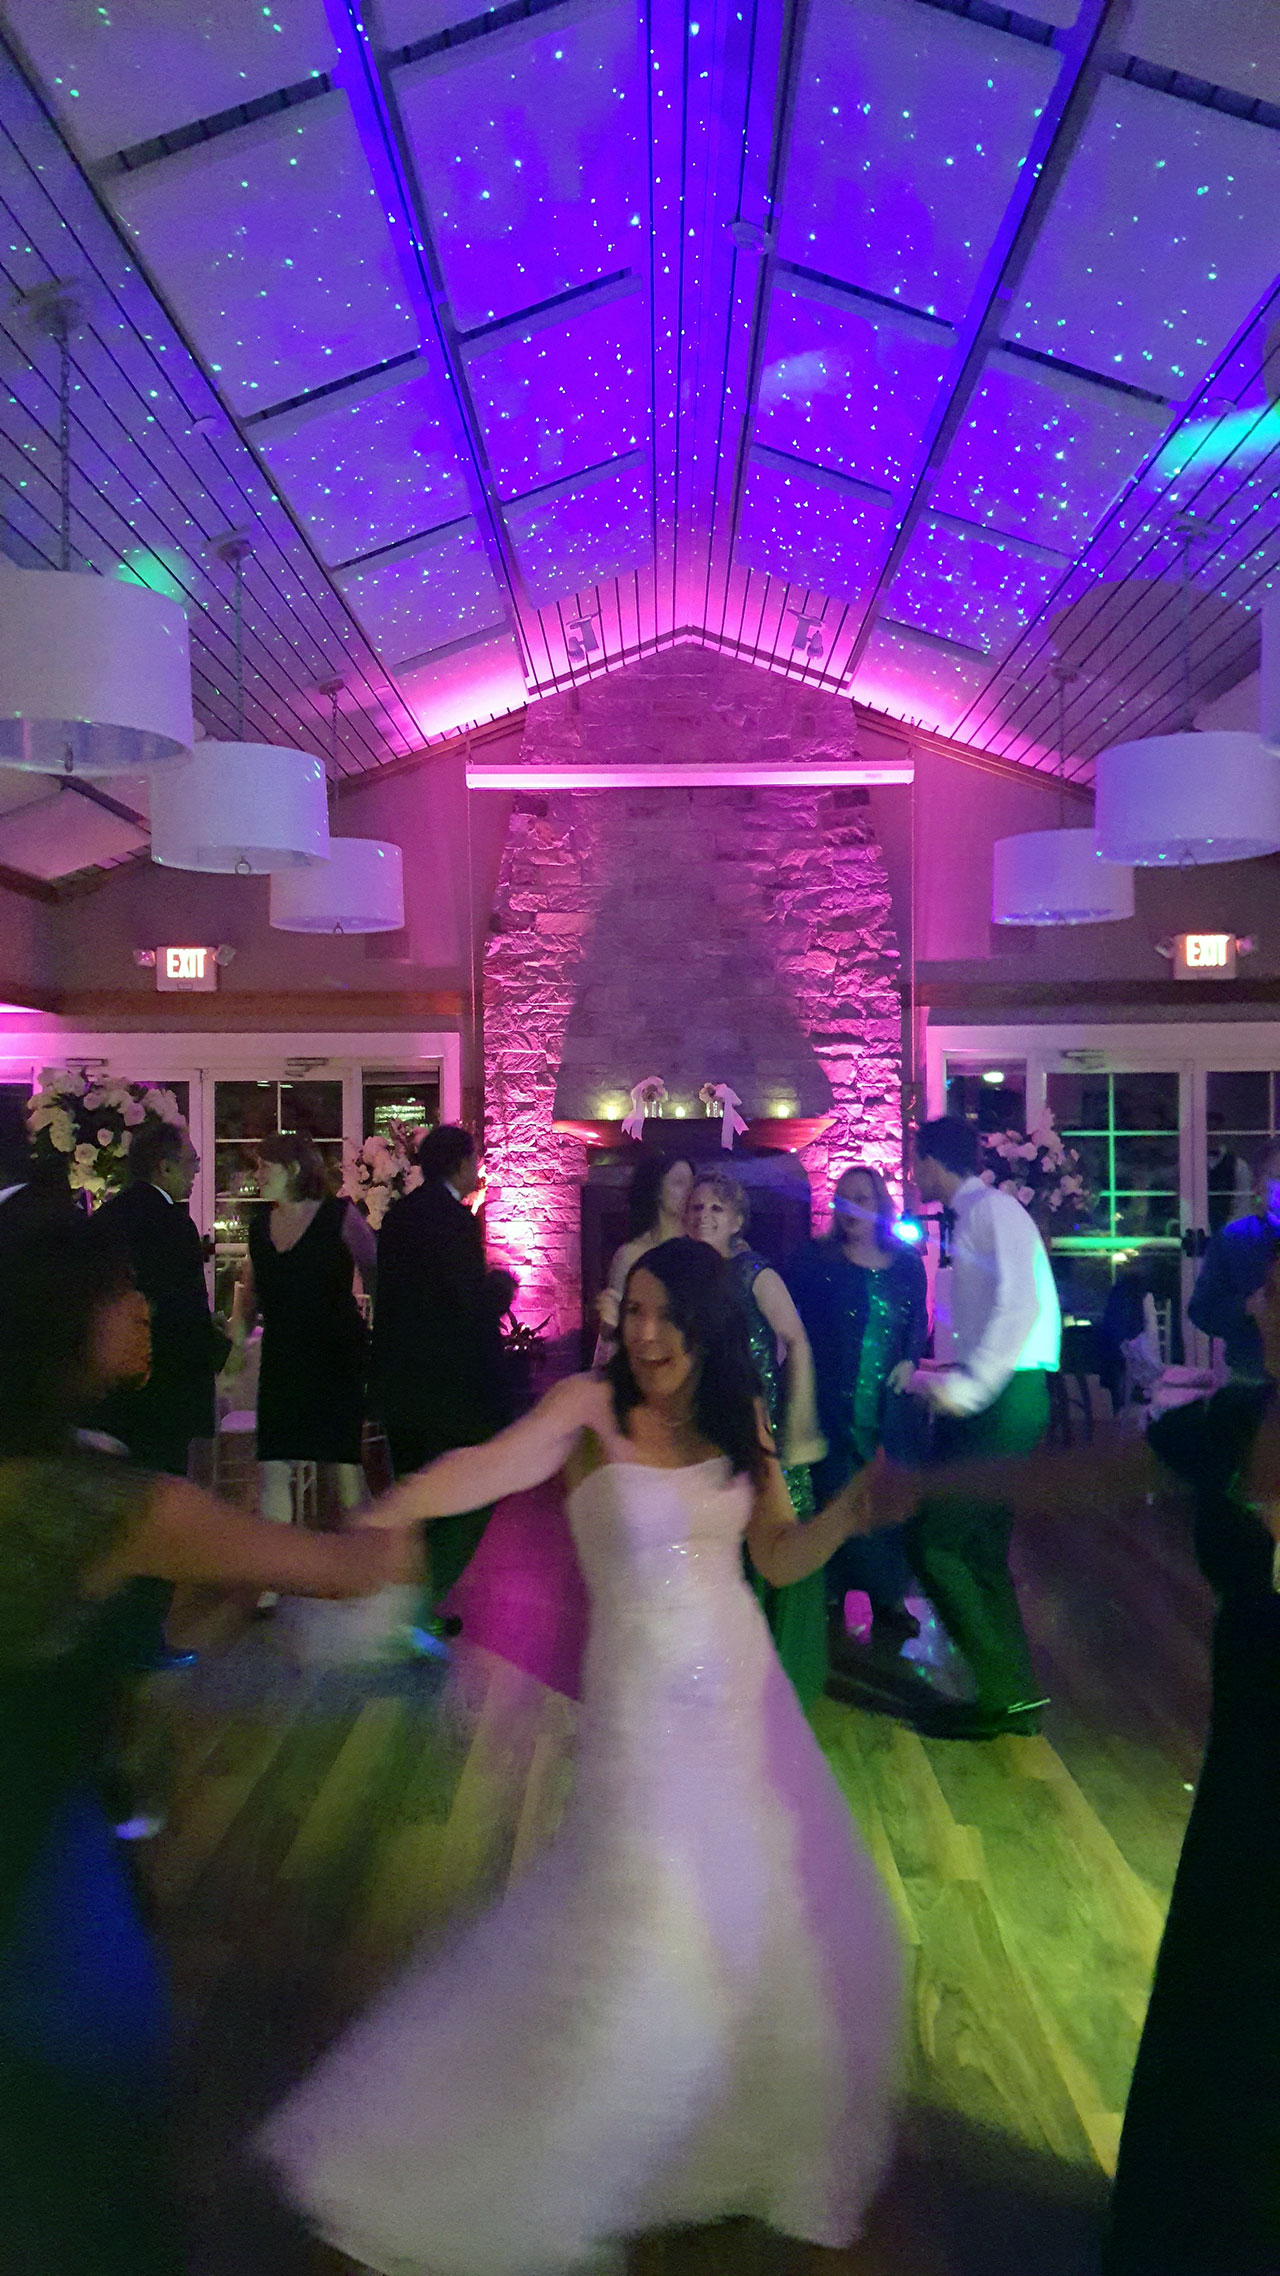 BlissLights BL-50 Starry night laser on cieling at wedding